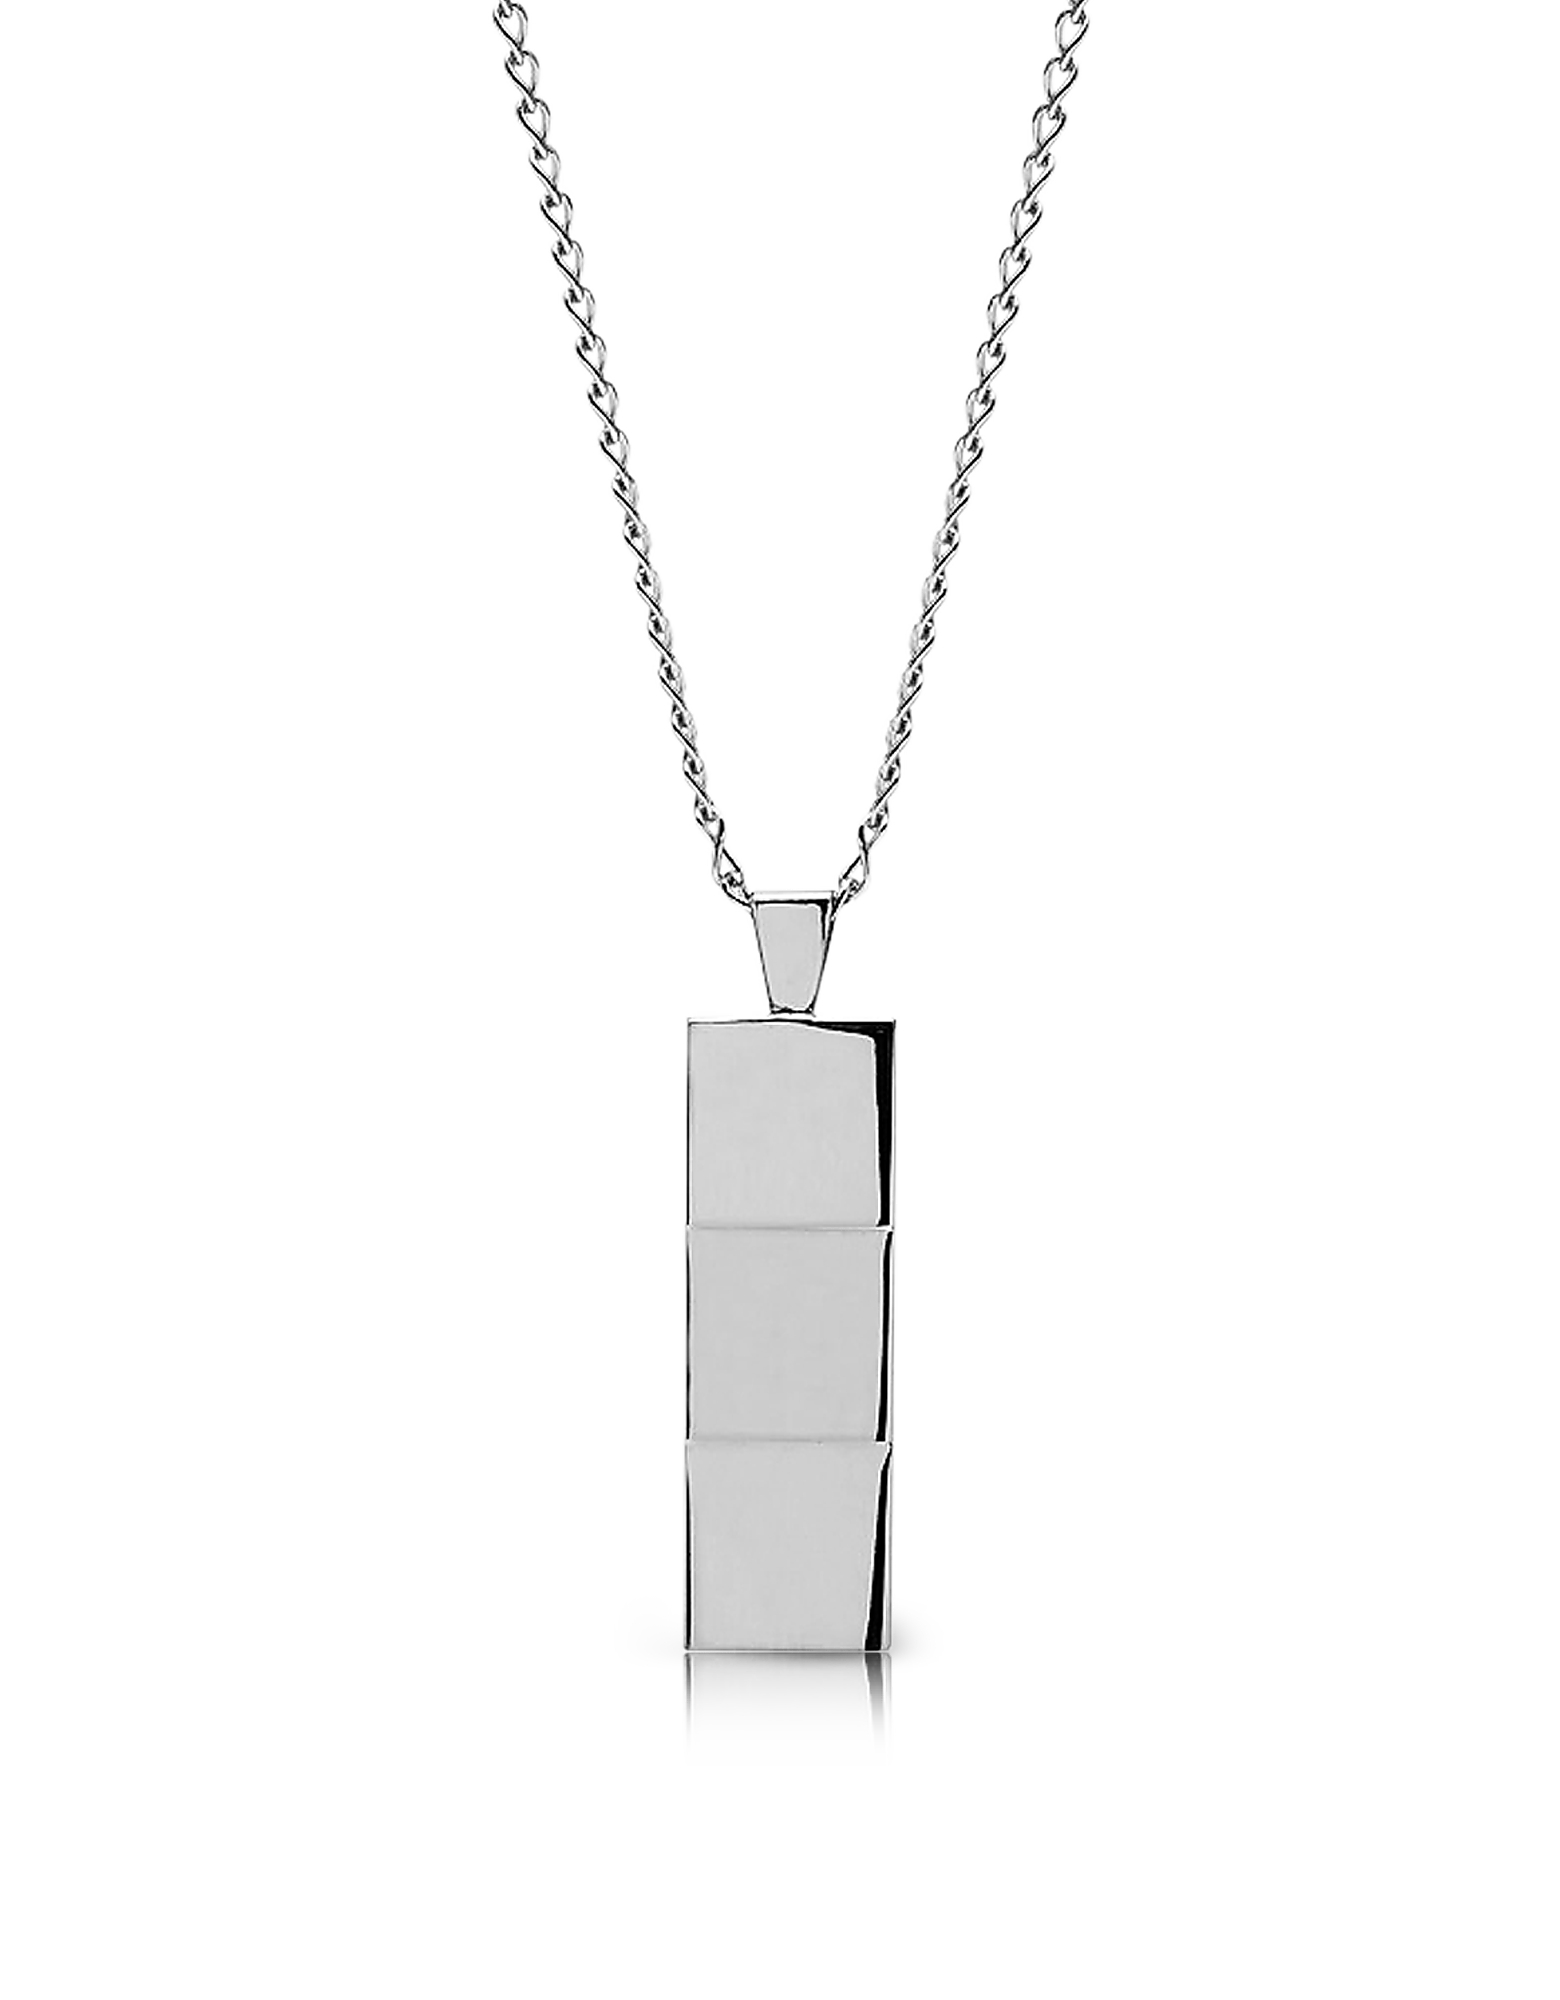 Northskull Designer Men's Necklaces, Layers Necklace Silver